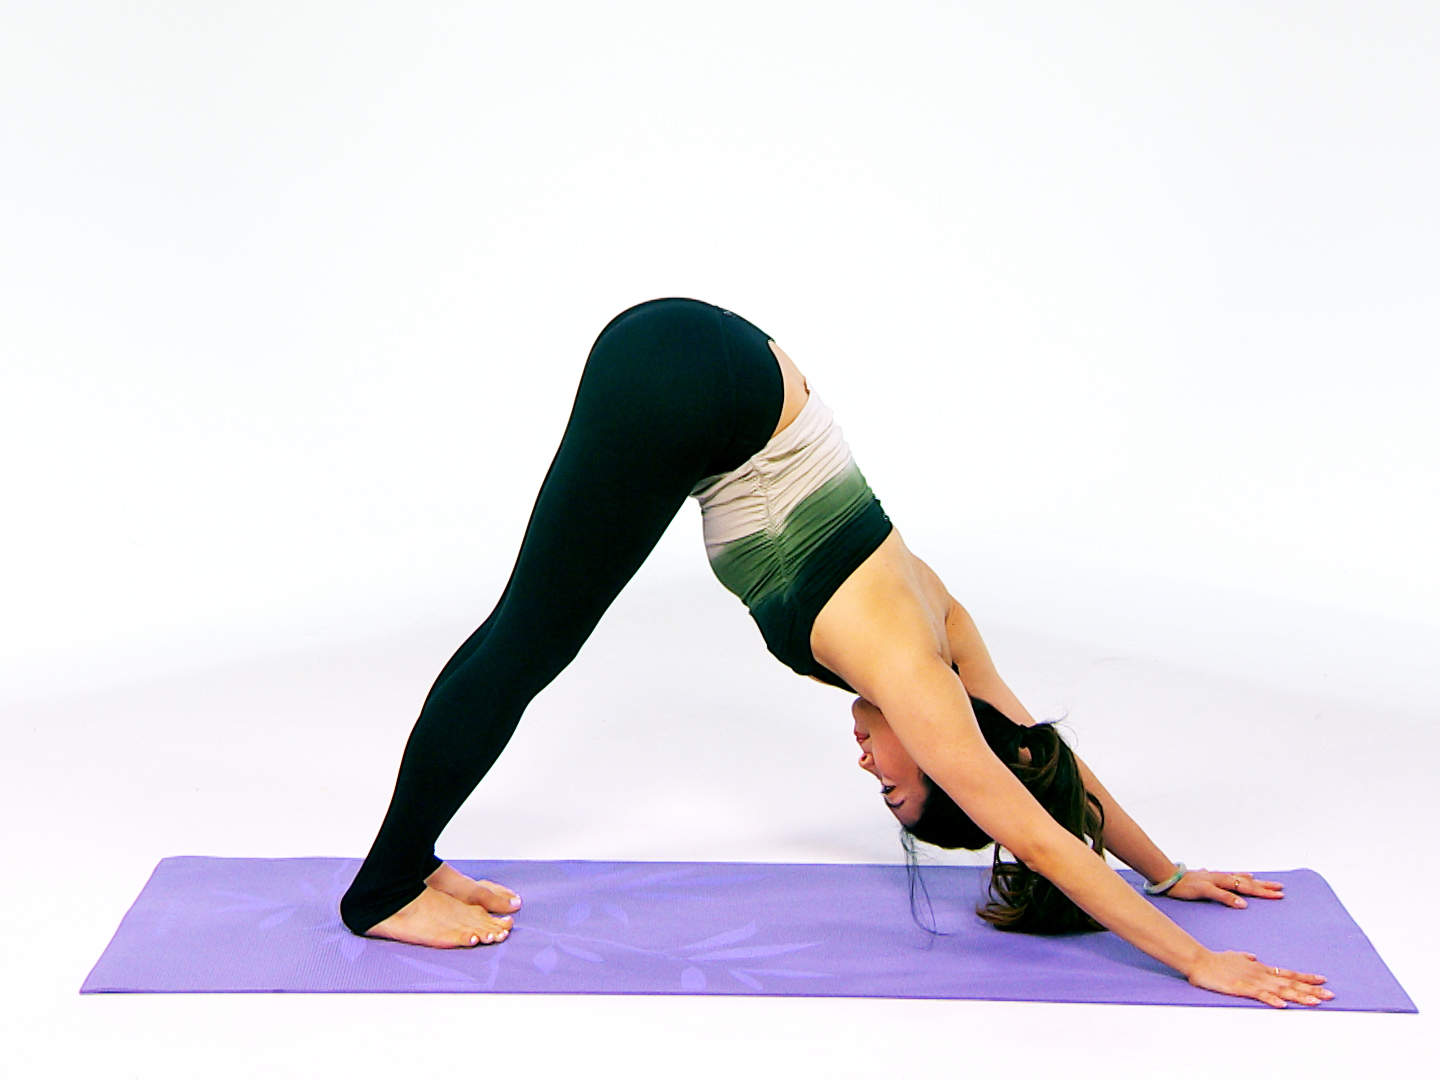 These Are The Yoga Poses Everyone Does Wrong